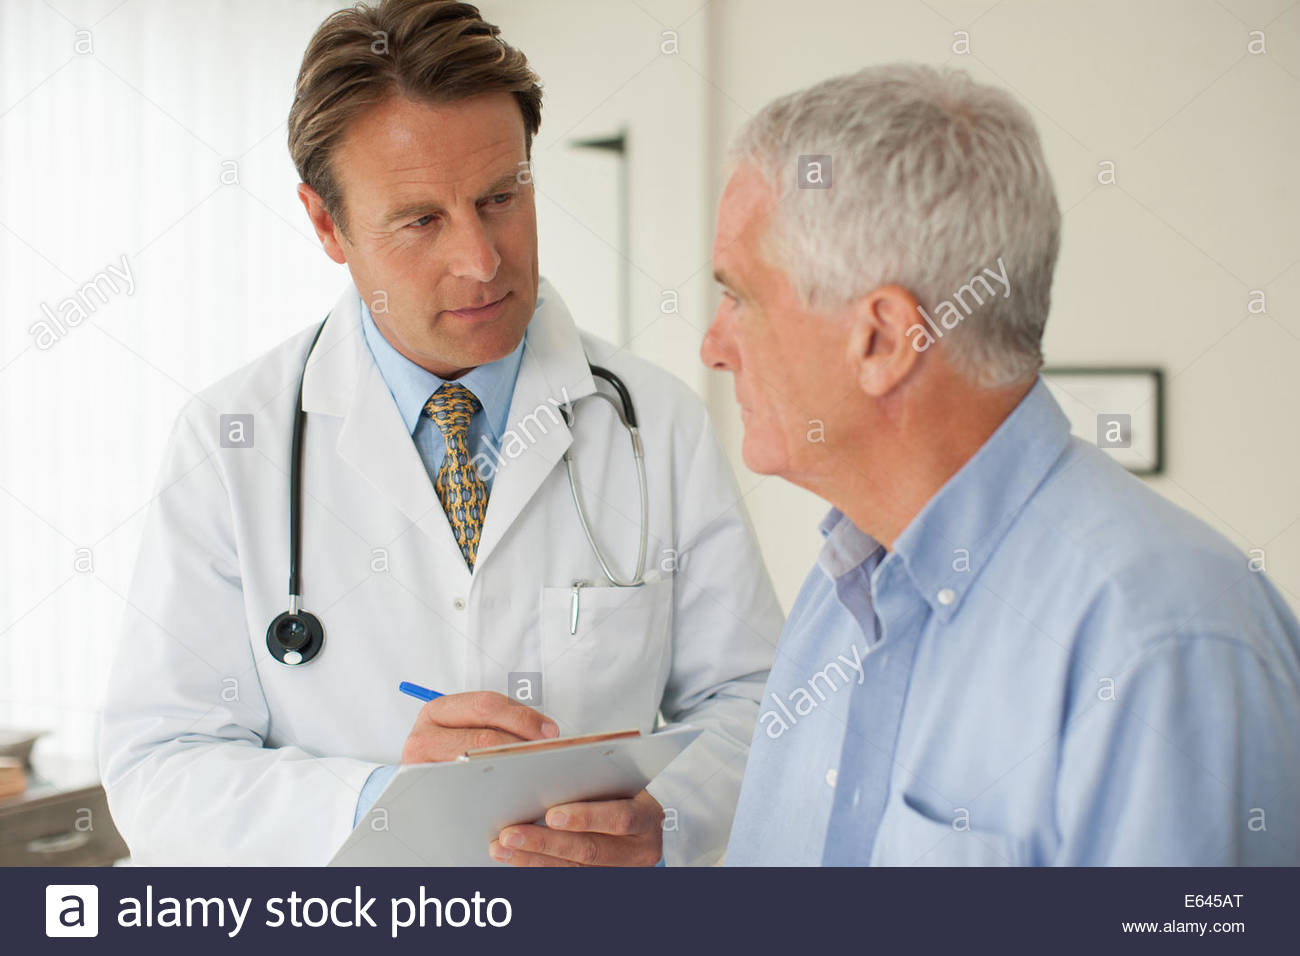 Doctor talking with patient in doctorÂ's office - Stock Image